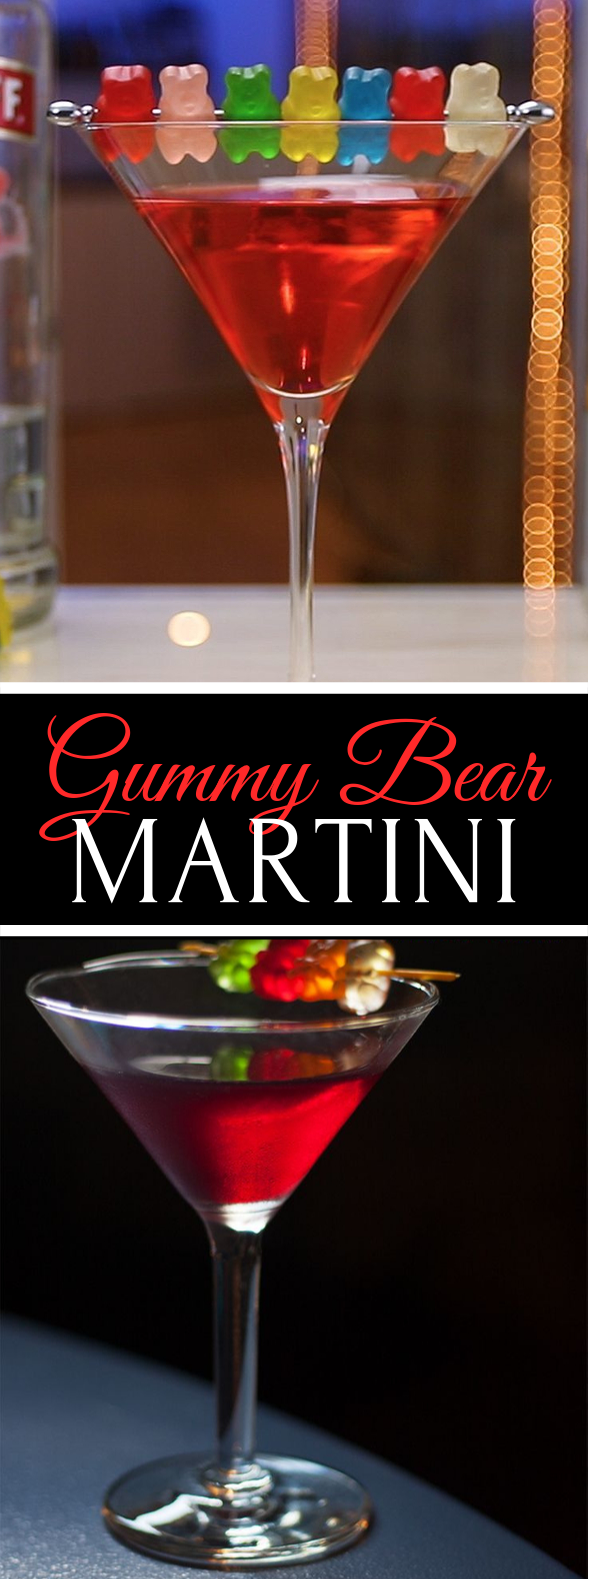 Gummy Bear Martini #drinks #vodka #cocktails #martini #partydrink